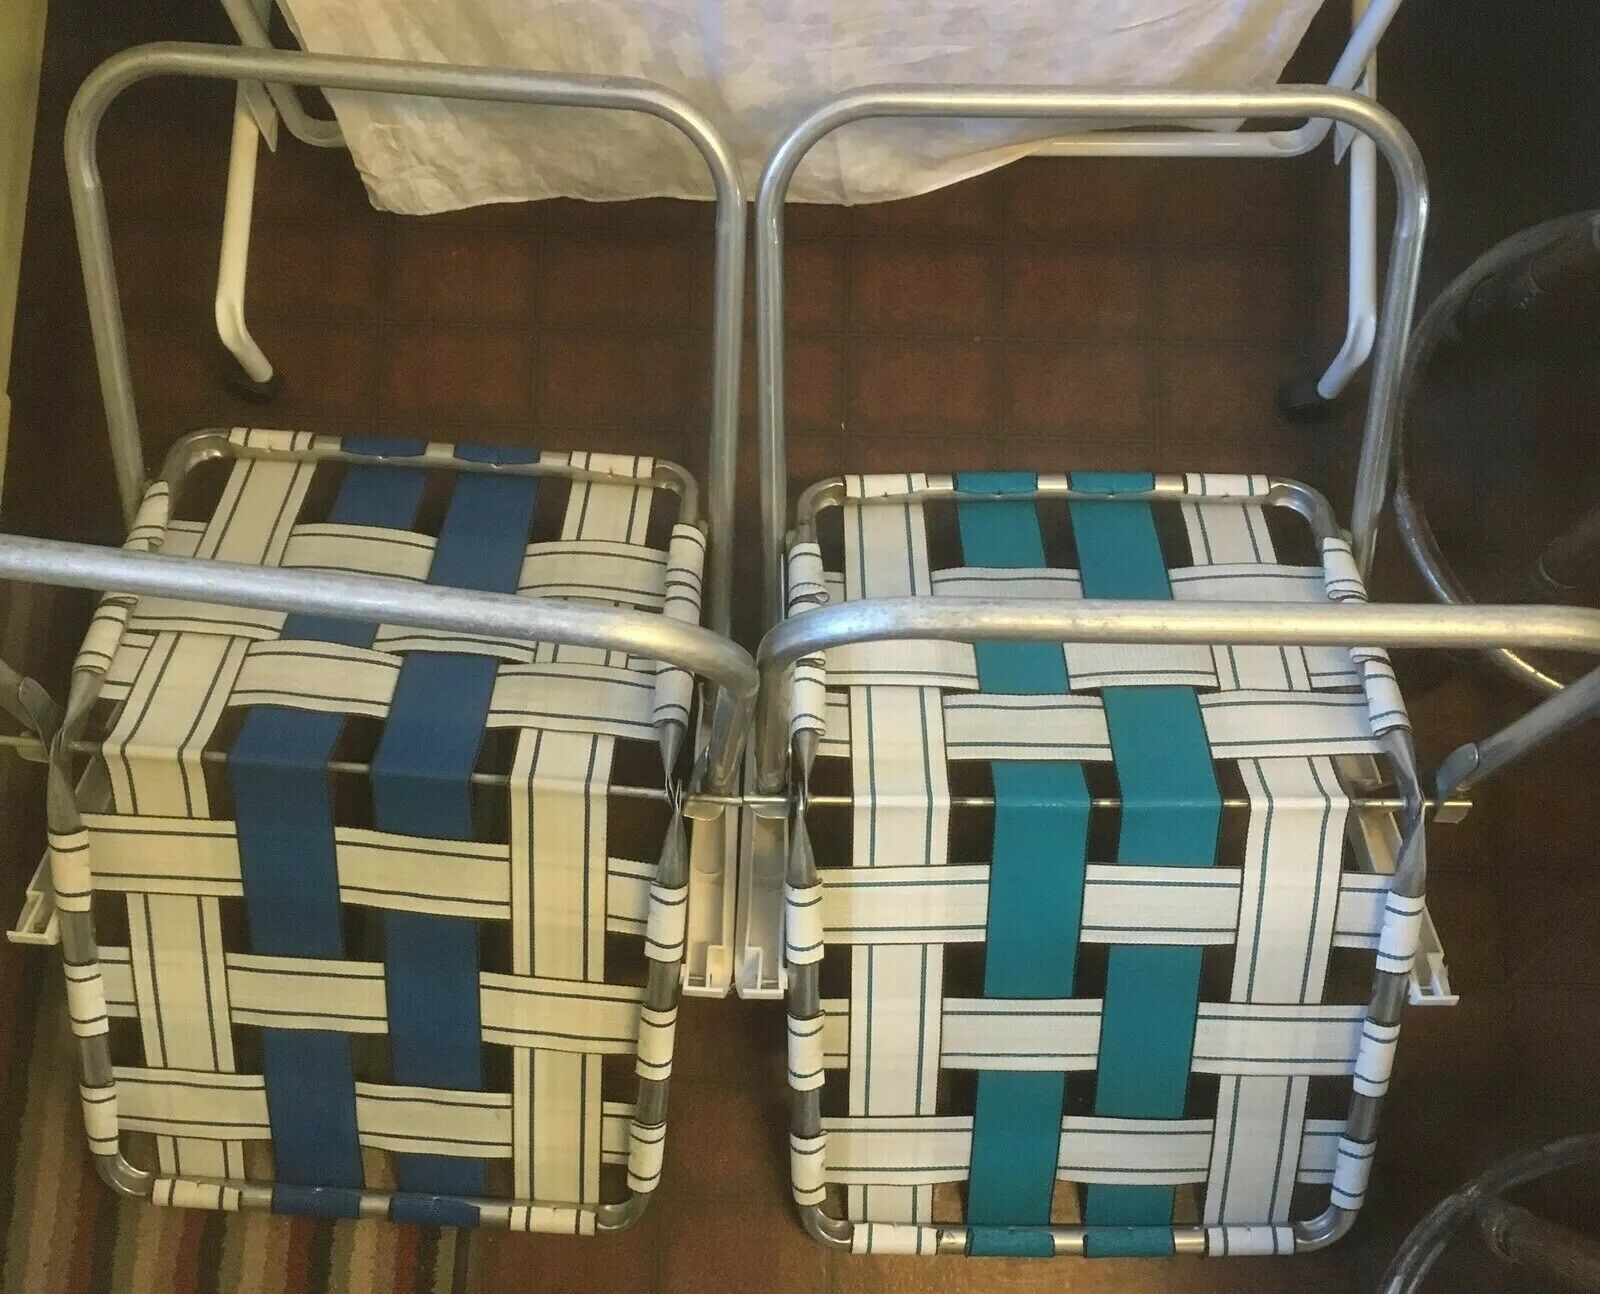 2 Sunbeam Webbed Lawn Chairs Blue Teal Plastic Arms Vintage Folding Aluminum